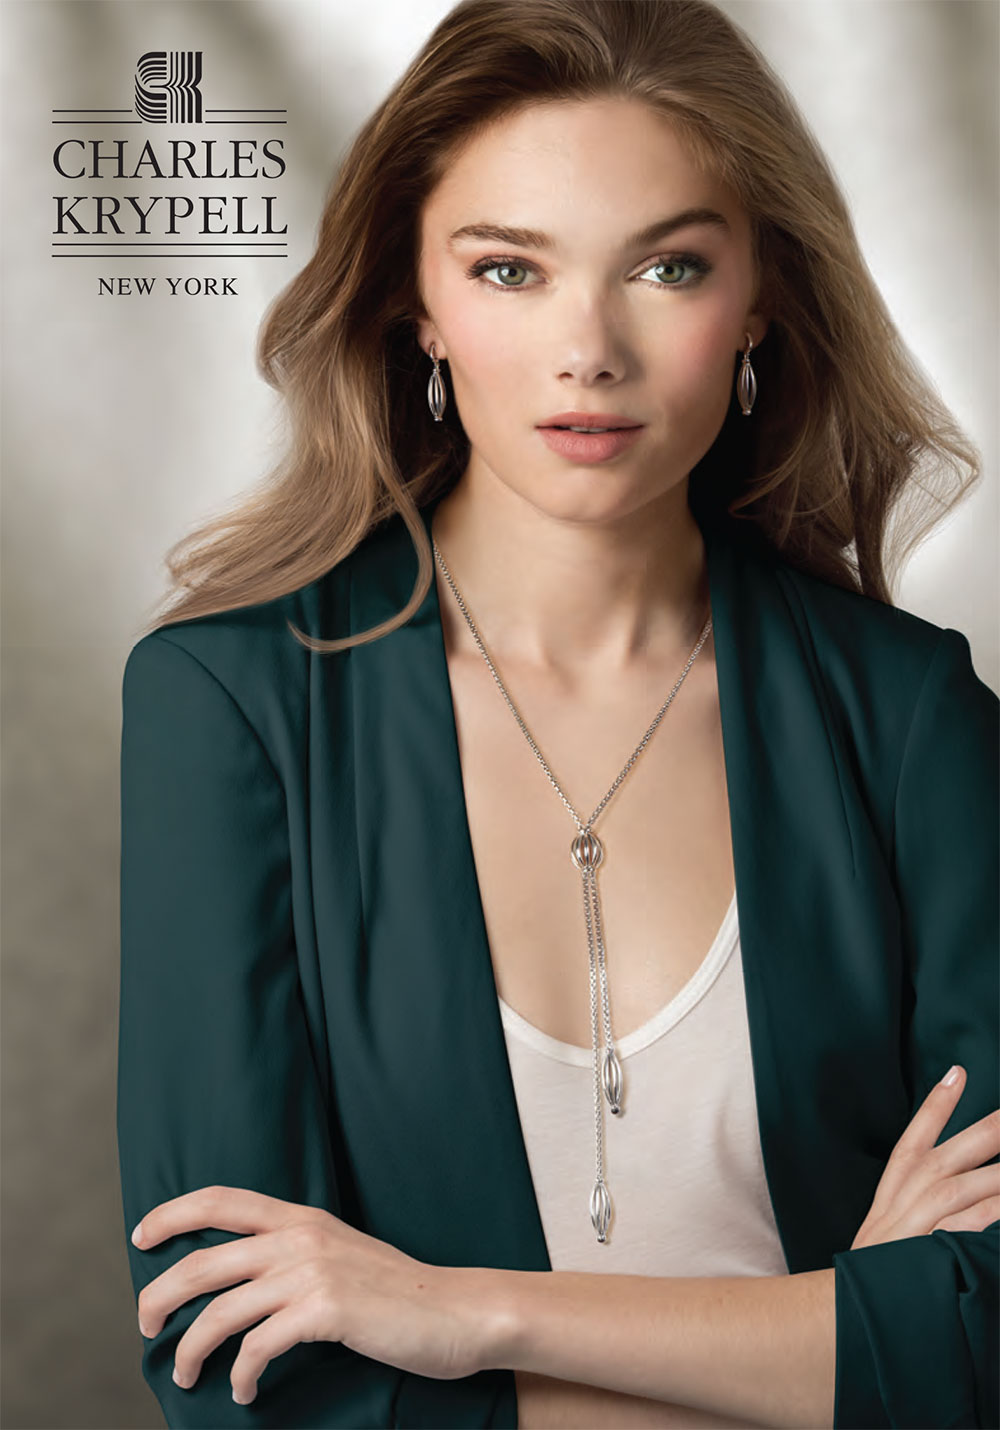 Family & Co. Jewelers Charles Krypell